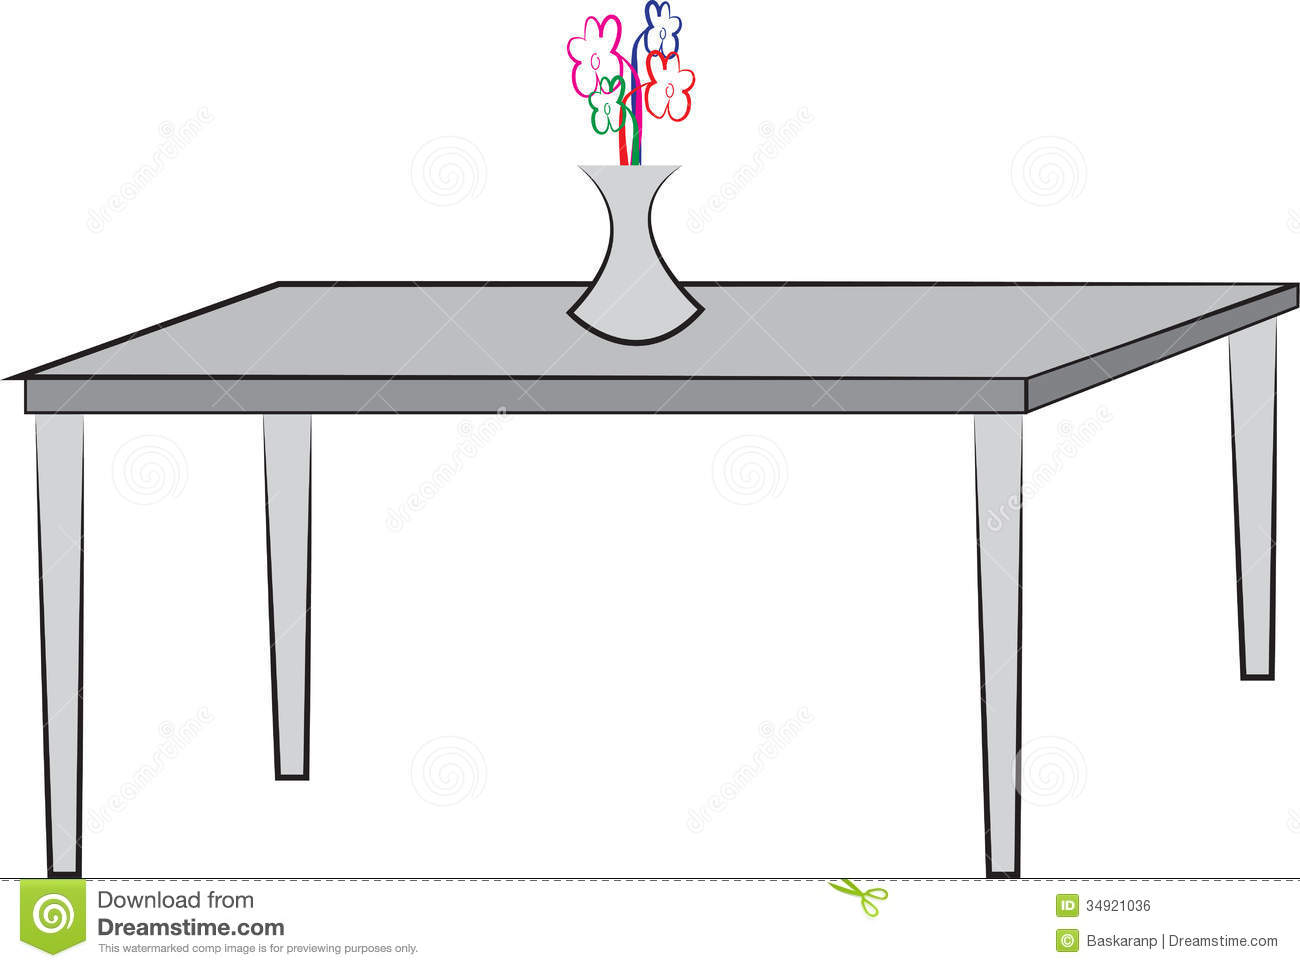 dessin simple de table image libre de droits image 34921036